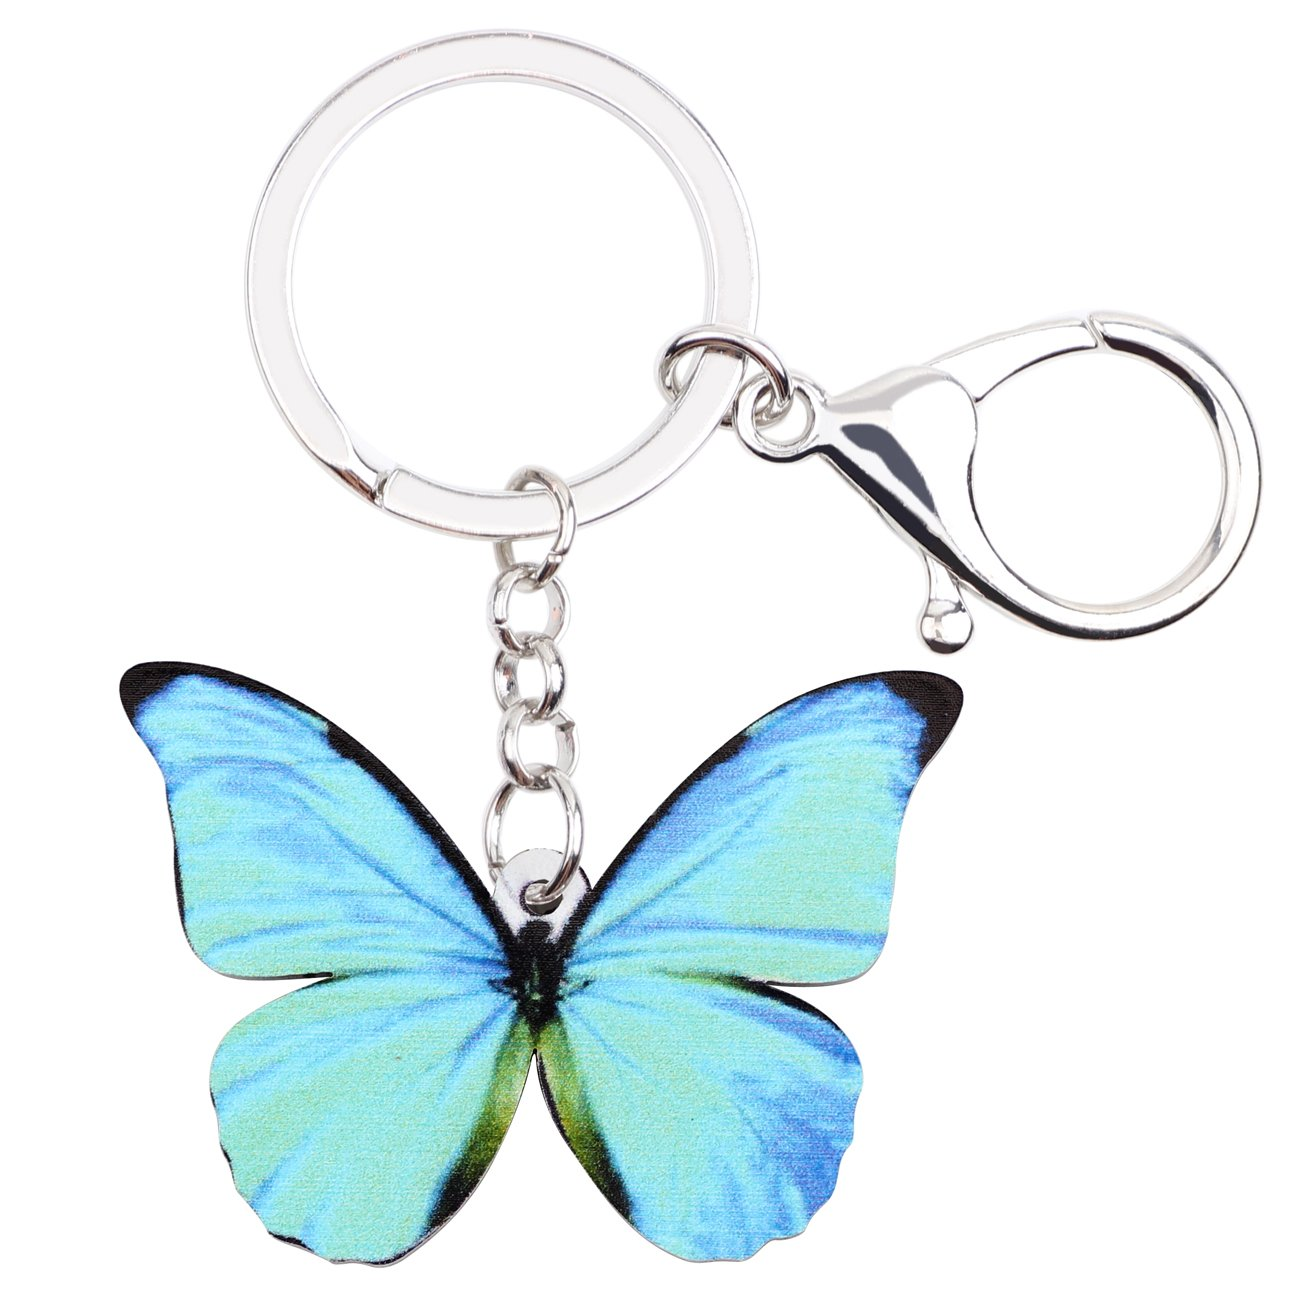 Morpho Menelaus Butterfly Key chains For Women Car Purse bag Rings Pendant Charms